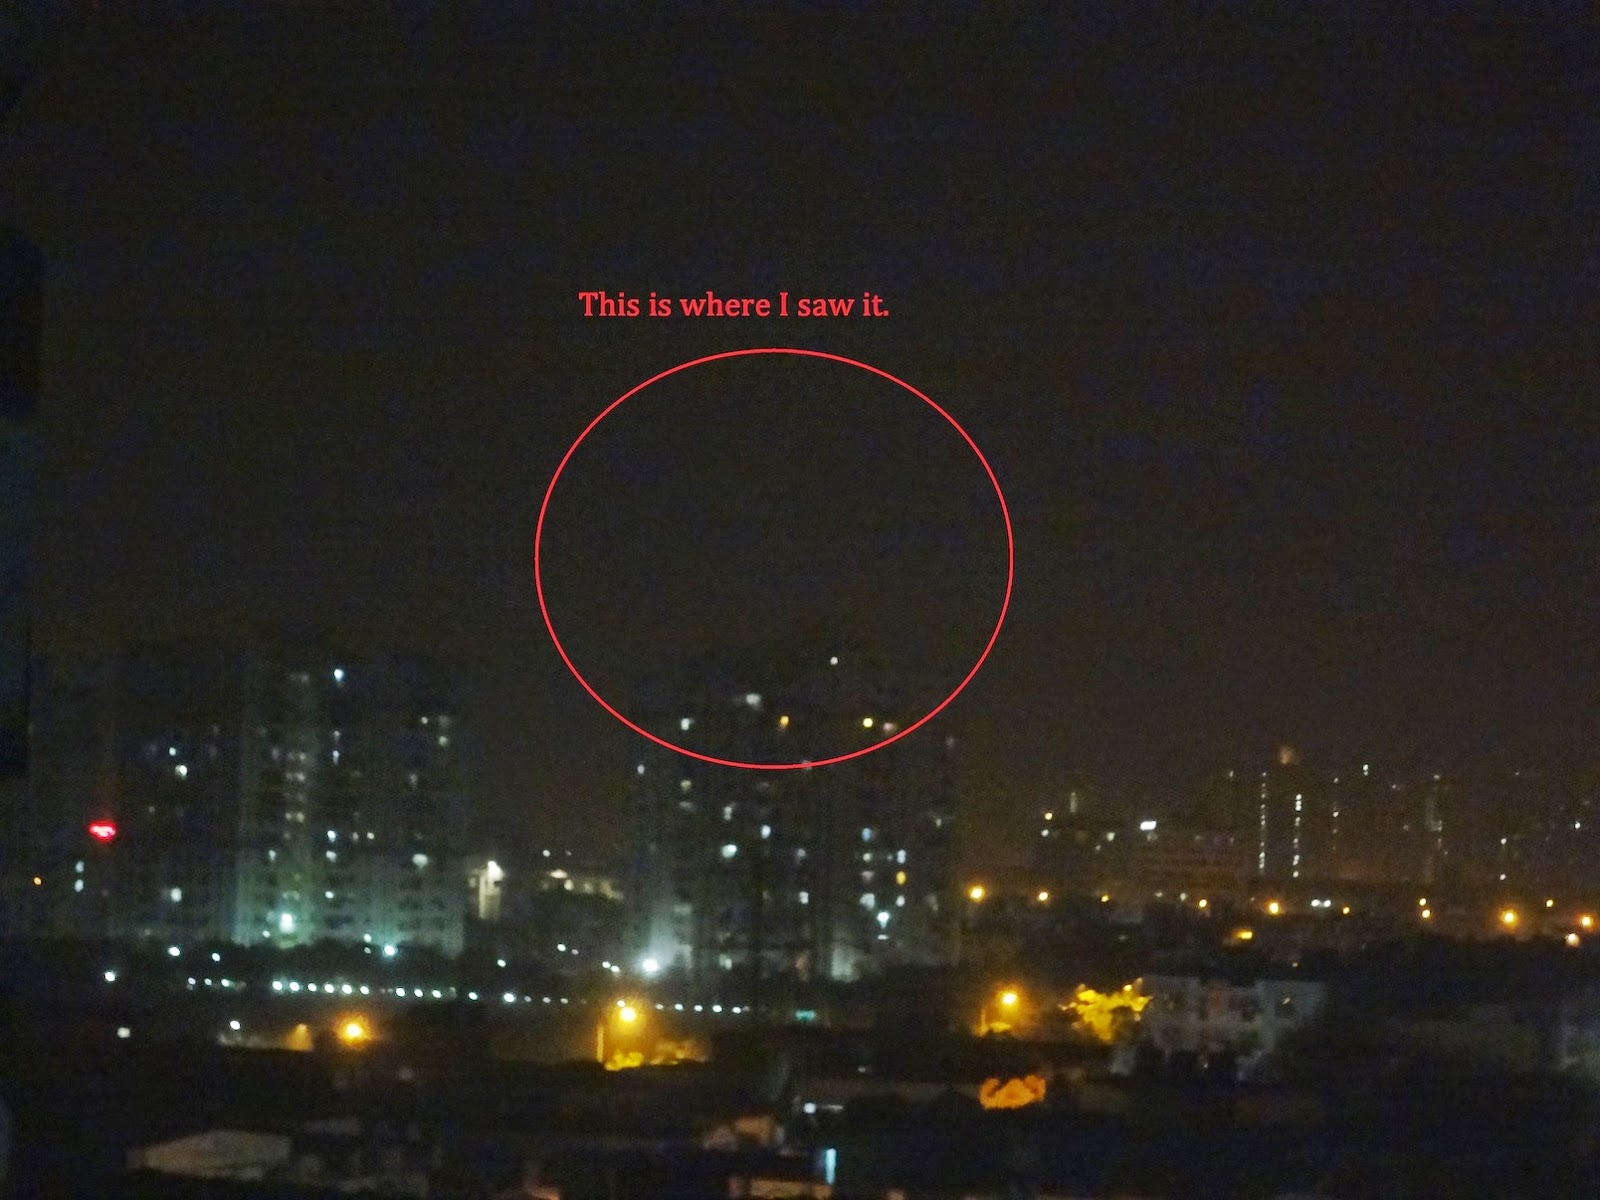 In this report, Scott Waring has published images of the UFO, along